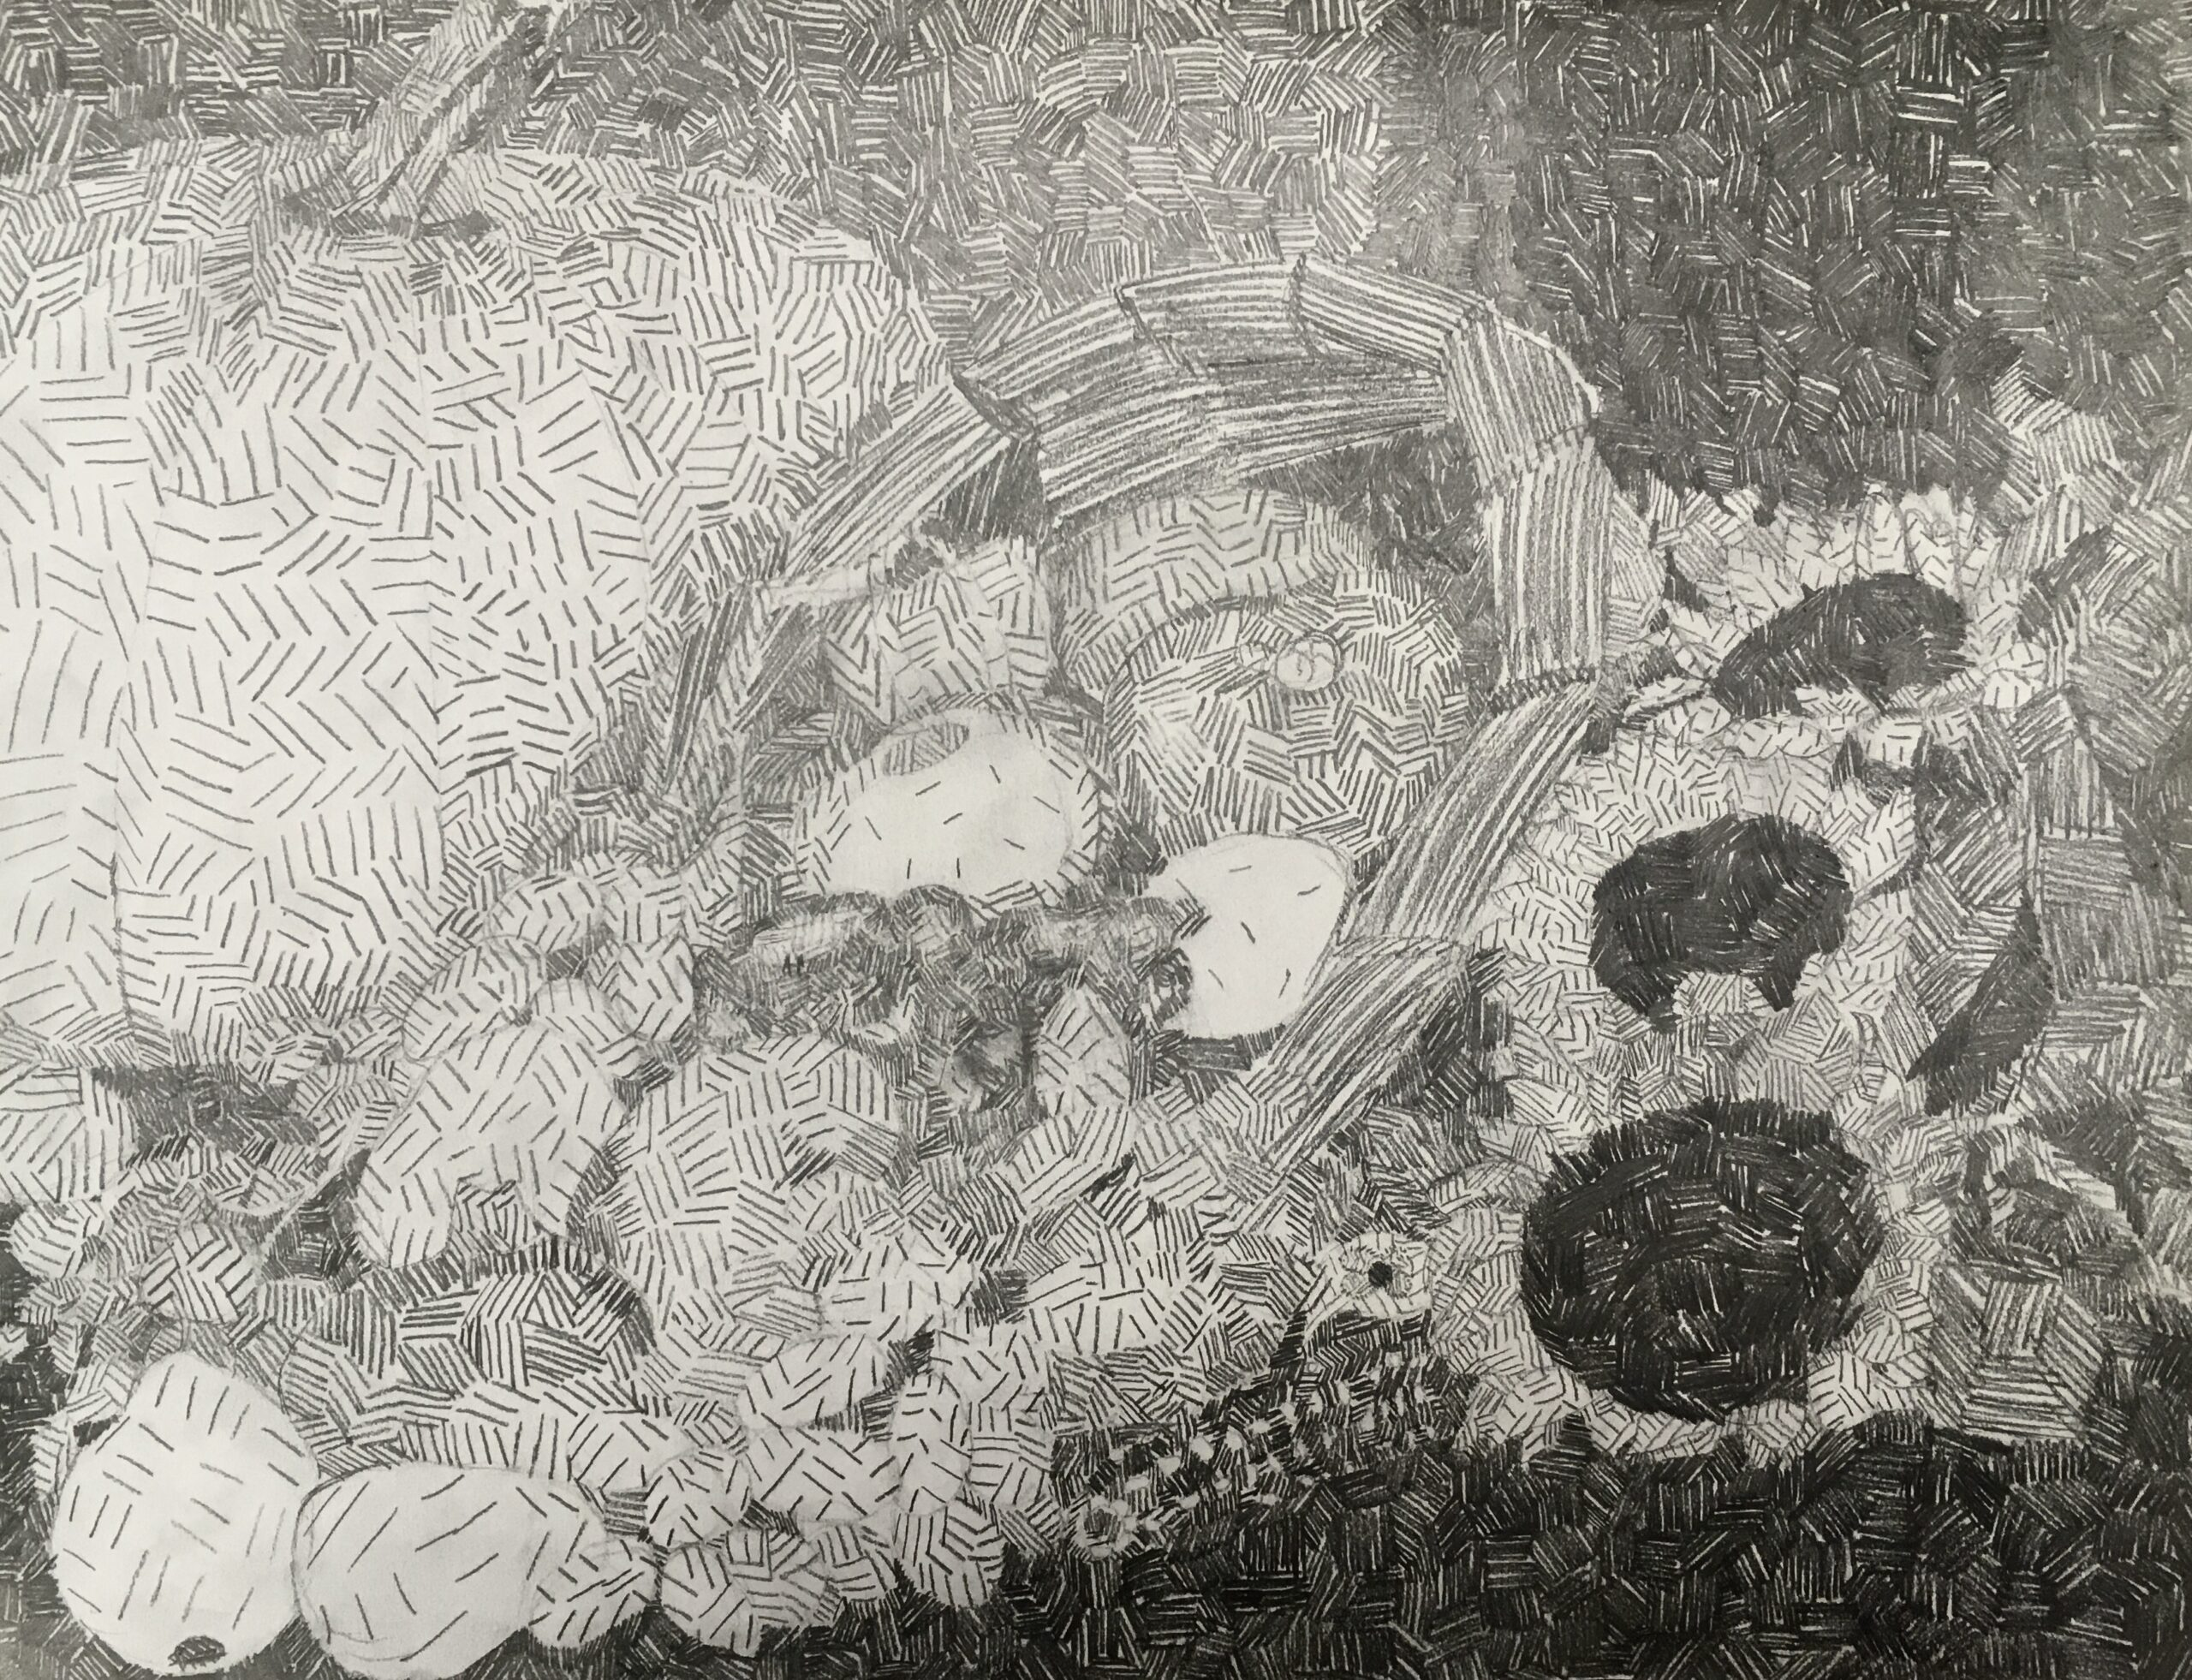 pen drawing of vegetables and flowers